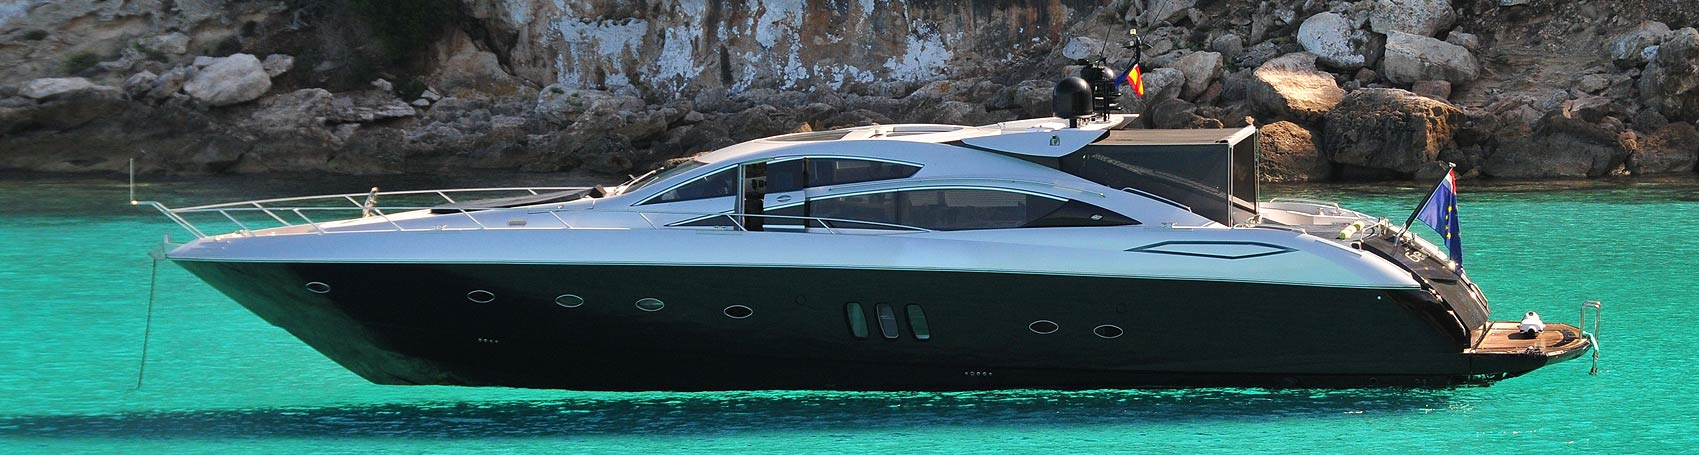 reservation of luxury yachts and sailing yachts in Ibiza. Consulting Services Ibiza